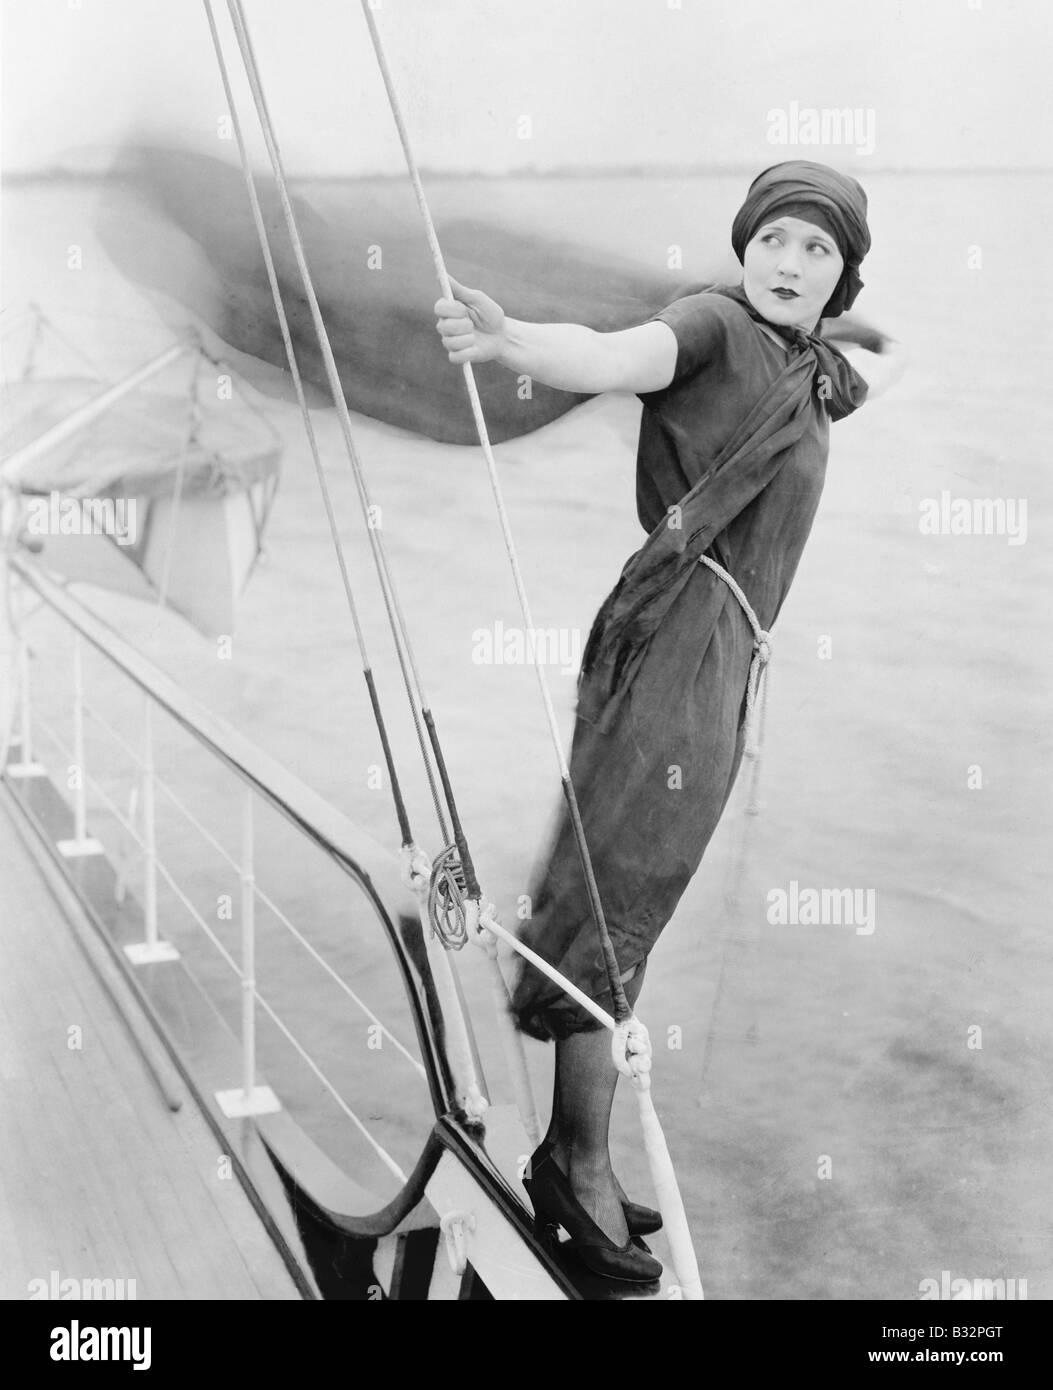 Woman leaning off boat into the wind - Stock Image